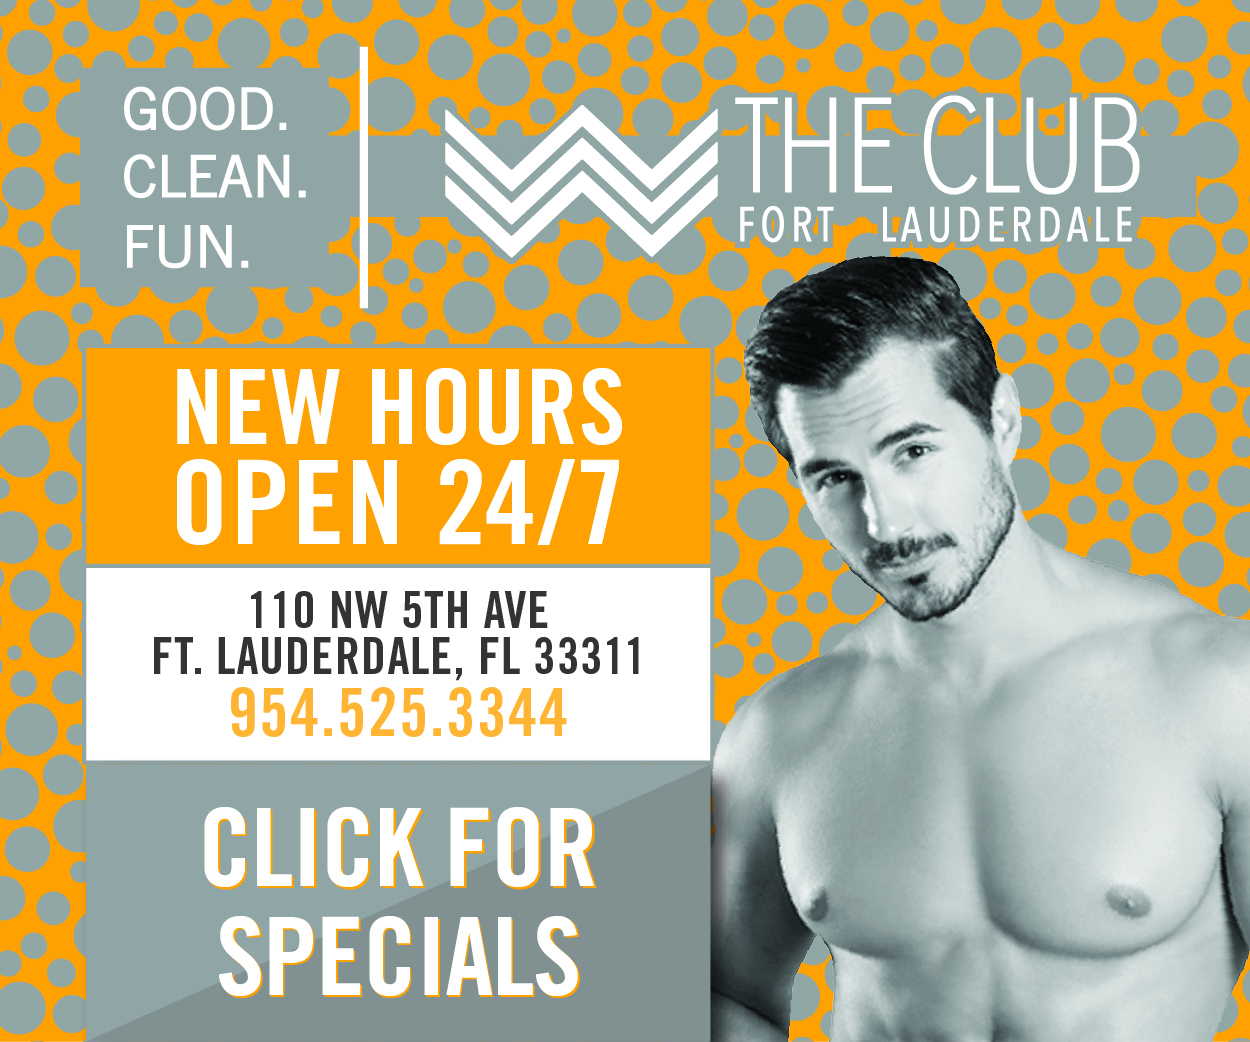 Club Fort Lauderdale  April 2021